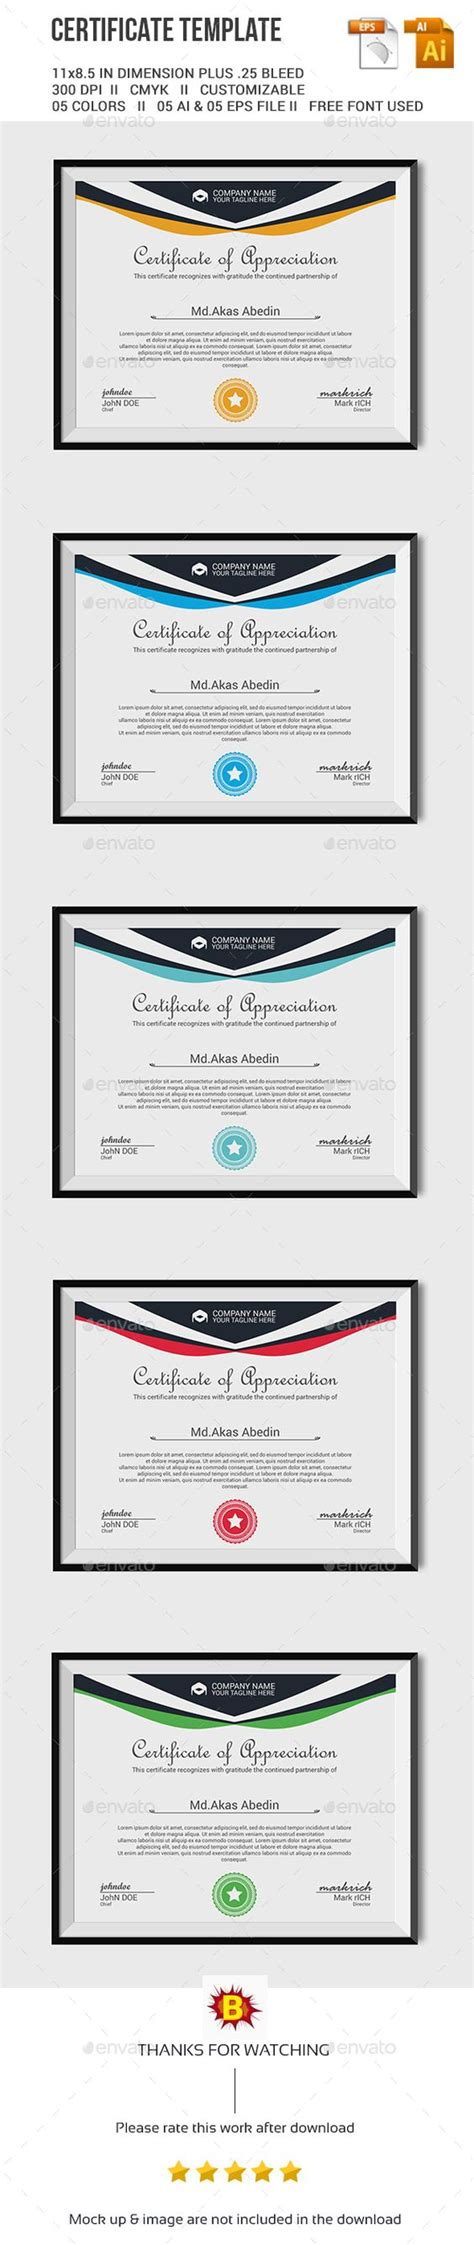 certificate template ai certificate template vector eps ai here http